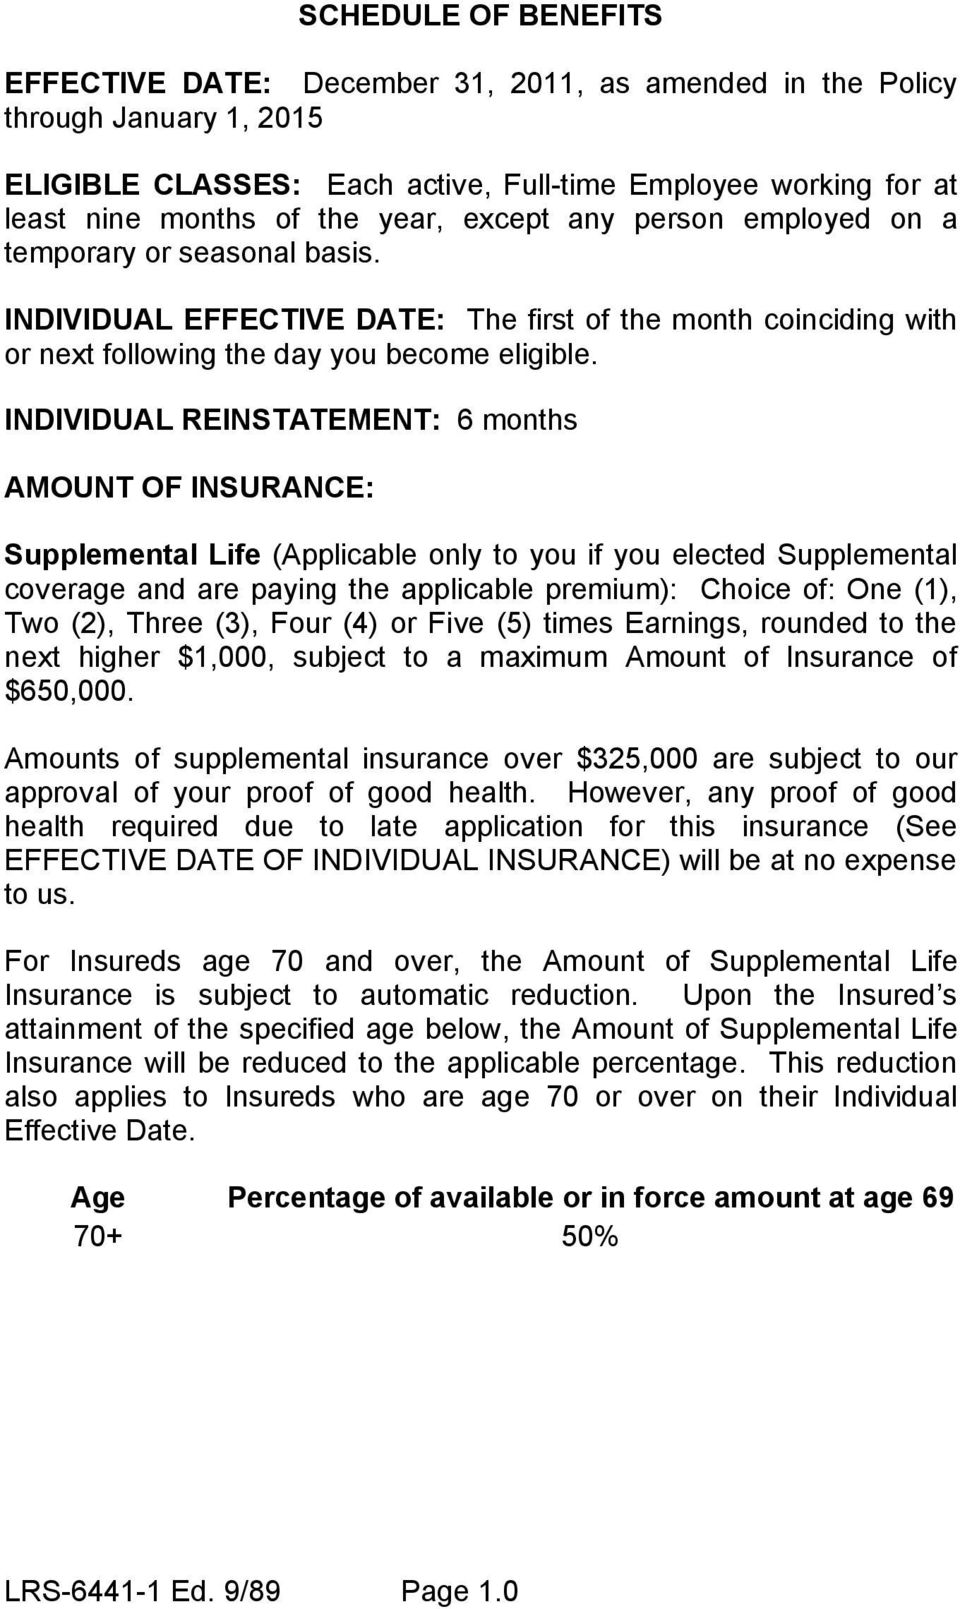 INDIVIDUAL REINSTATEMENT: 6 months AMOUNT OF INSURANCE: Supplemental Life (Applicable only to you if you elected Supplemental coverage and are paying the applicable premium): Choice of: One (1), Two